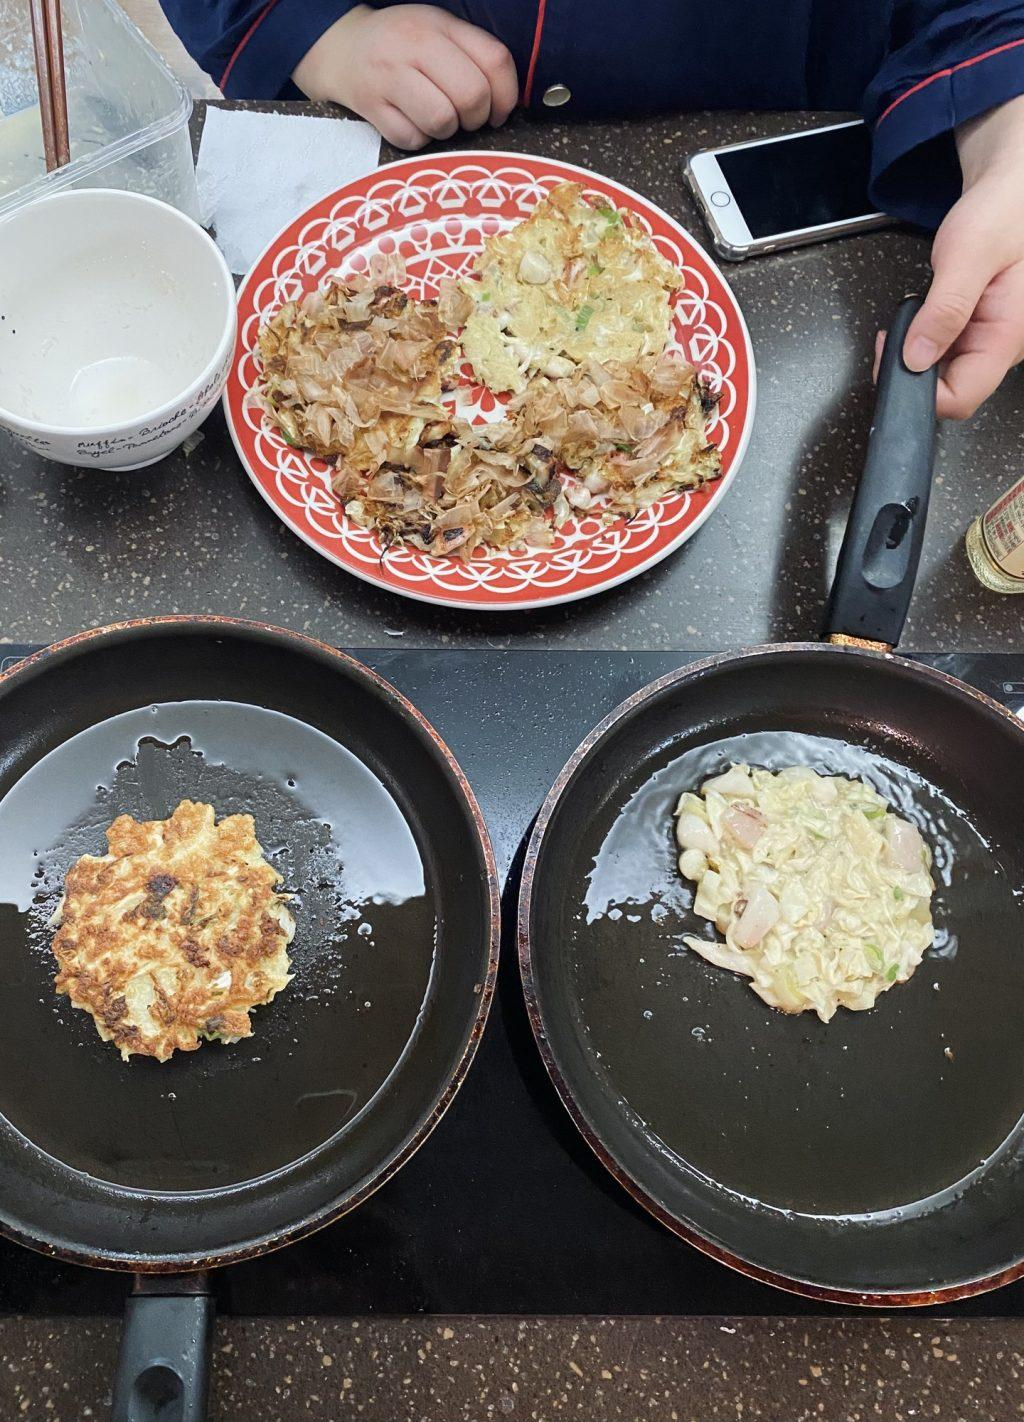 Grace Lee, a senior Chemistry major at Sangmyung University, and I cook Okonomiyaki on a kitchen stove Sept. 19. This was the second time I cooked with another housemate, and it was the beginning of a new friendship.